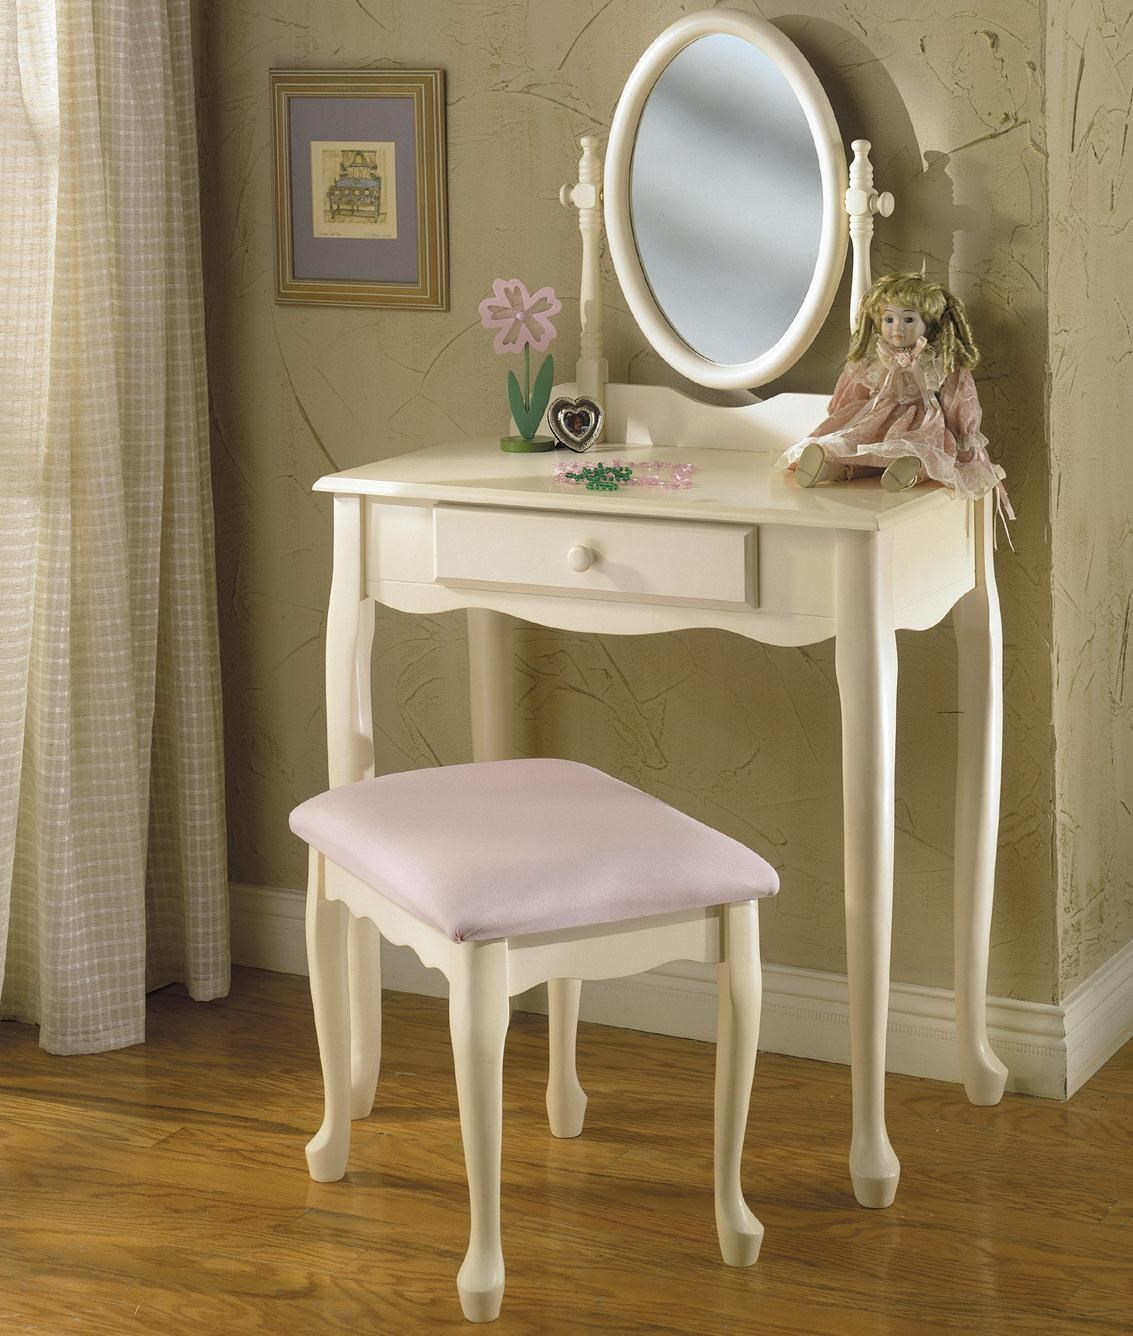 Exceptionnel Powell Vanities 3 Piece Youth Vanity Set